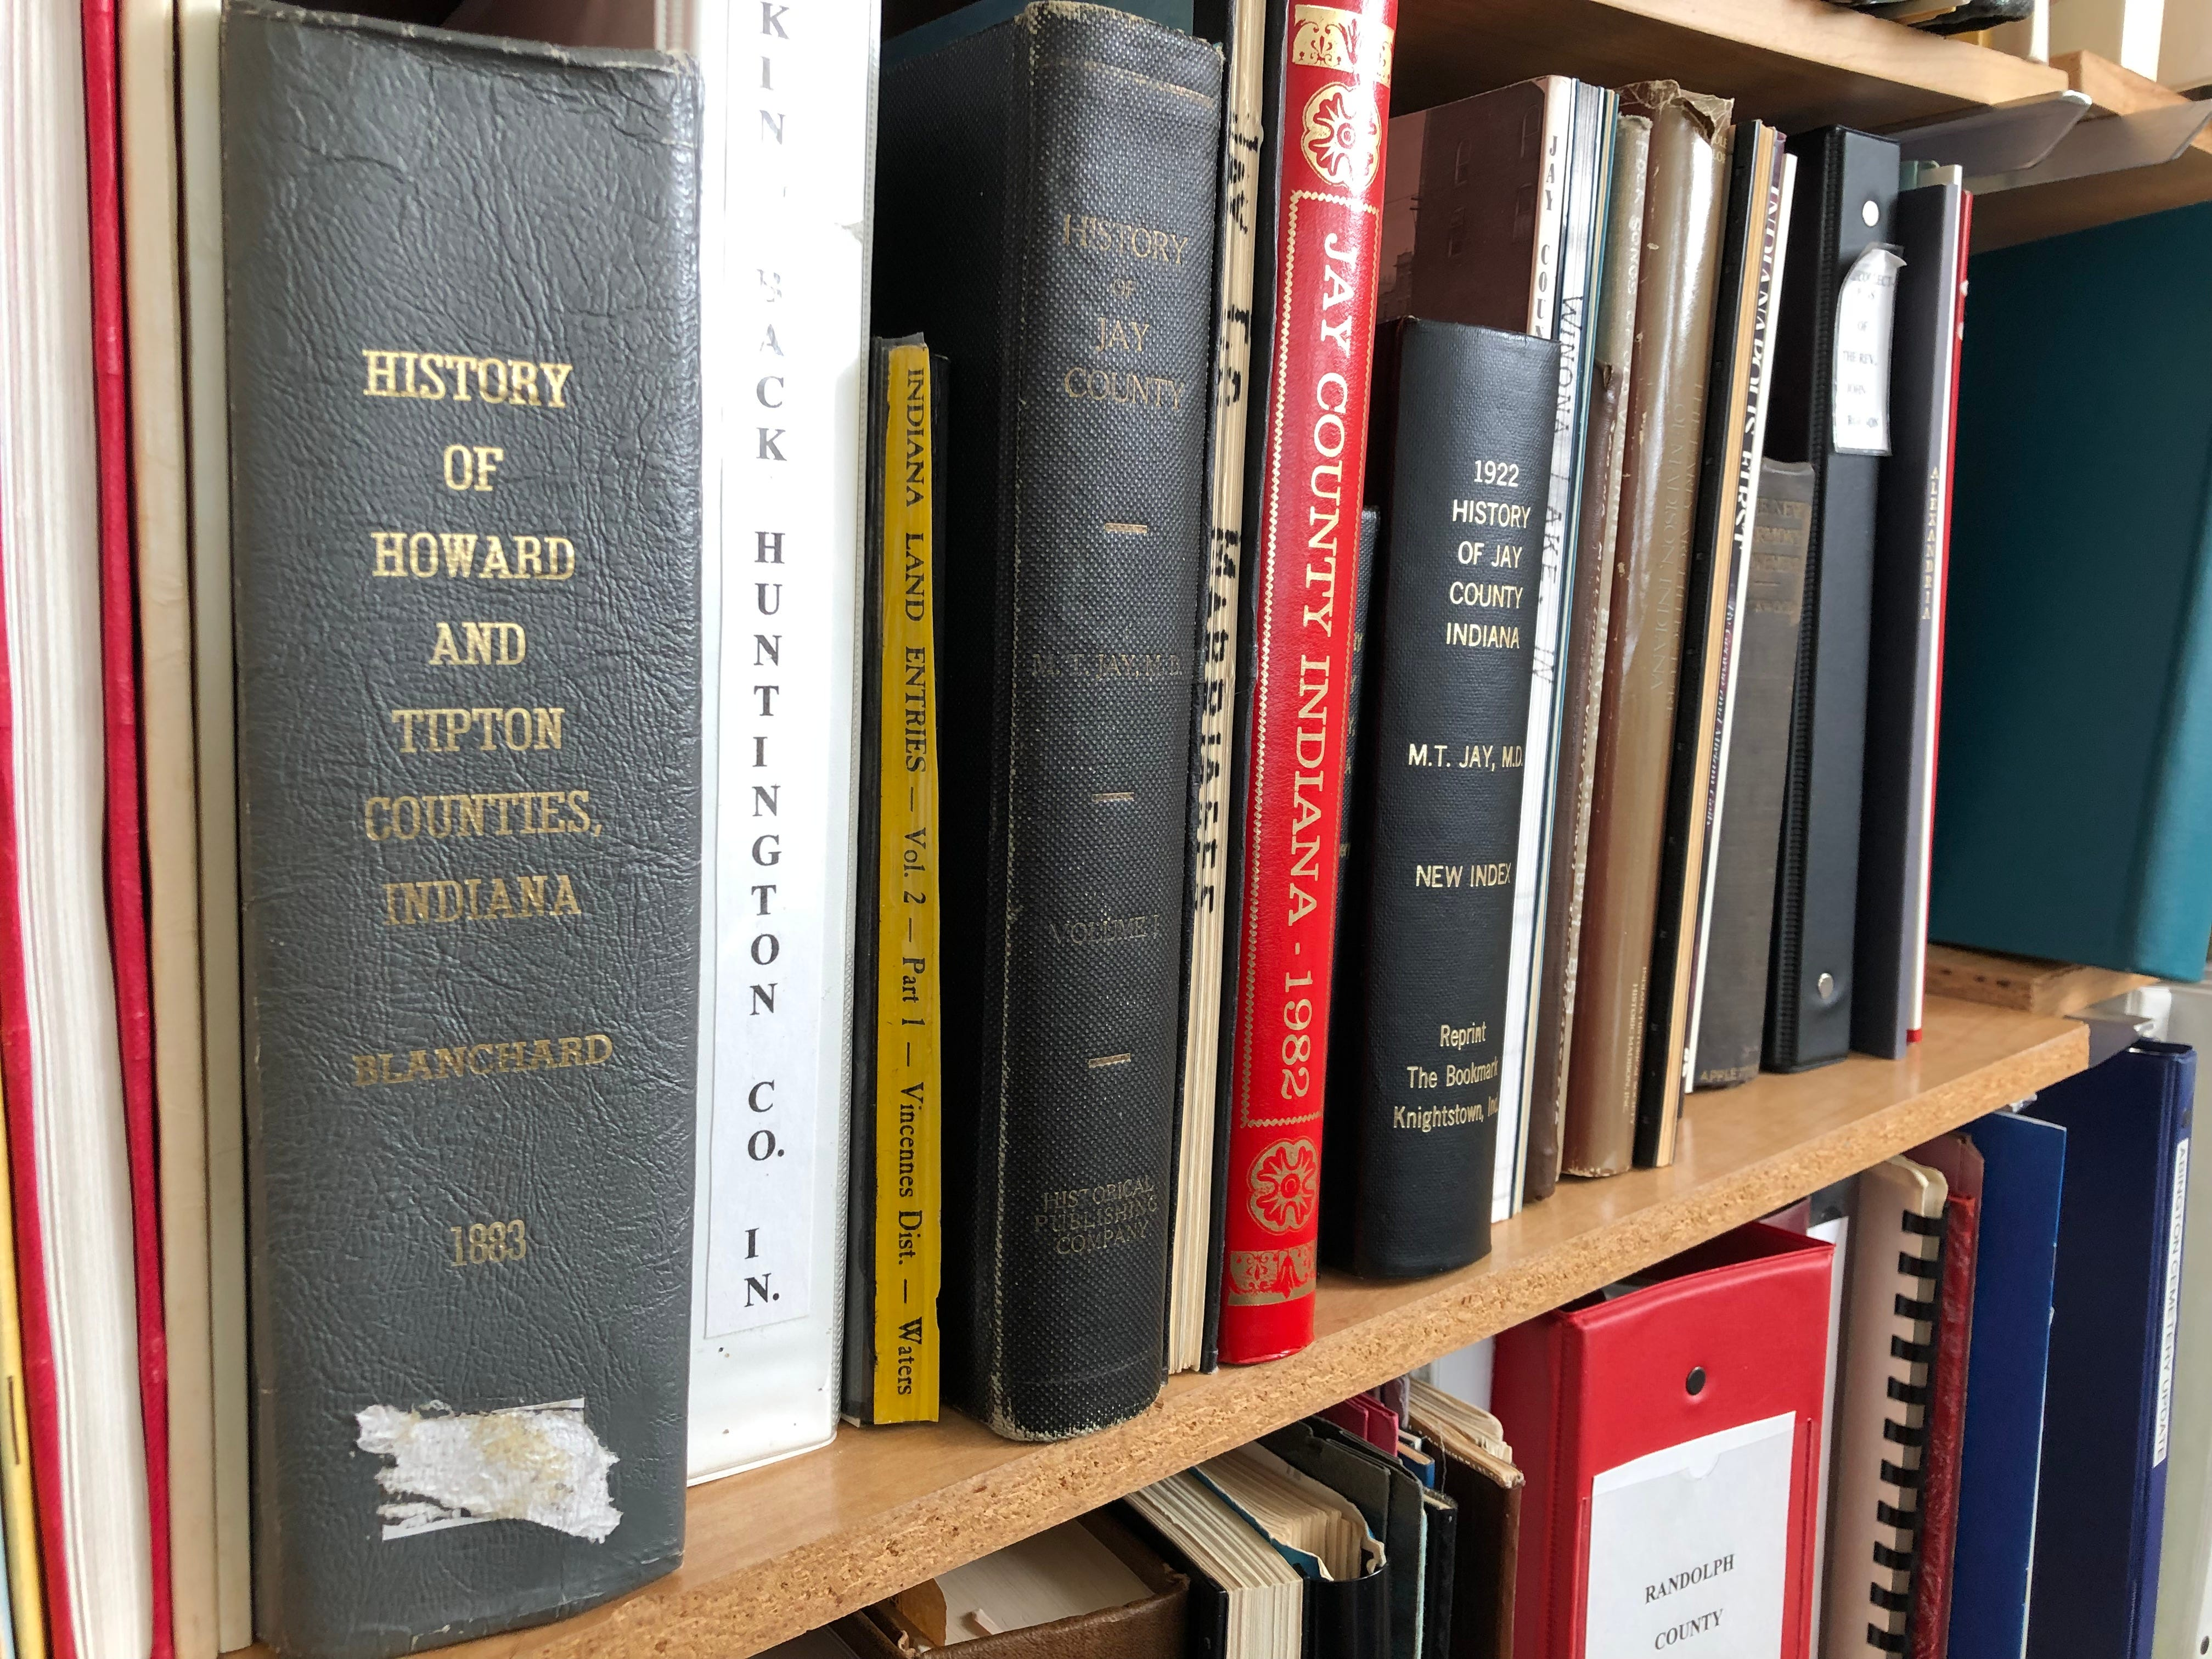 They Wayne County Genealogical Society's reference materials include items from around the state and beyond.